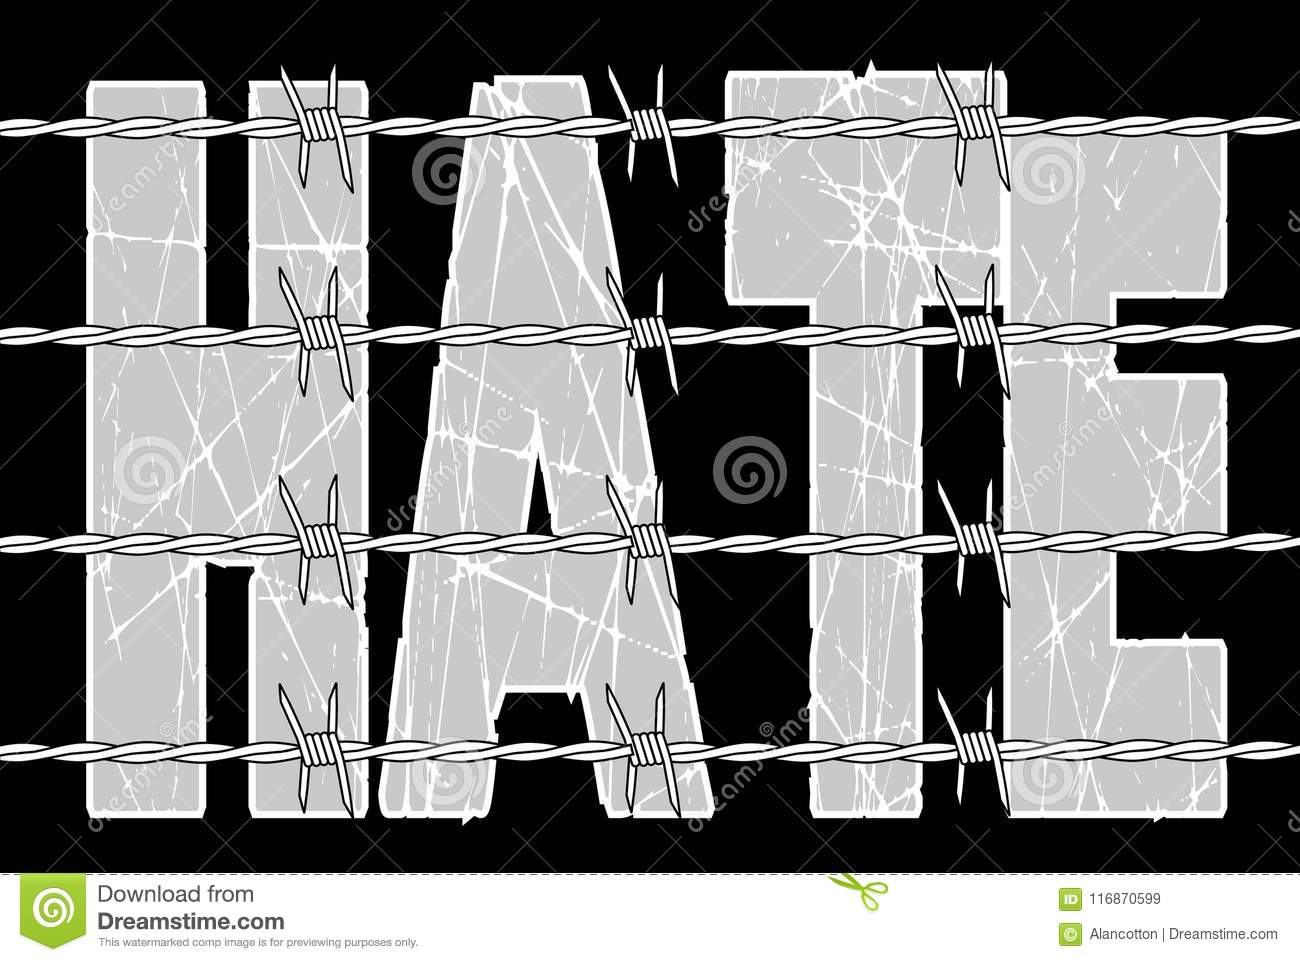 Hate Behind Barbed Wire Background Stock Vector - Illustration of ...